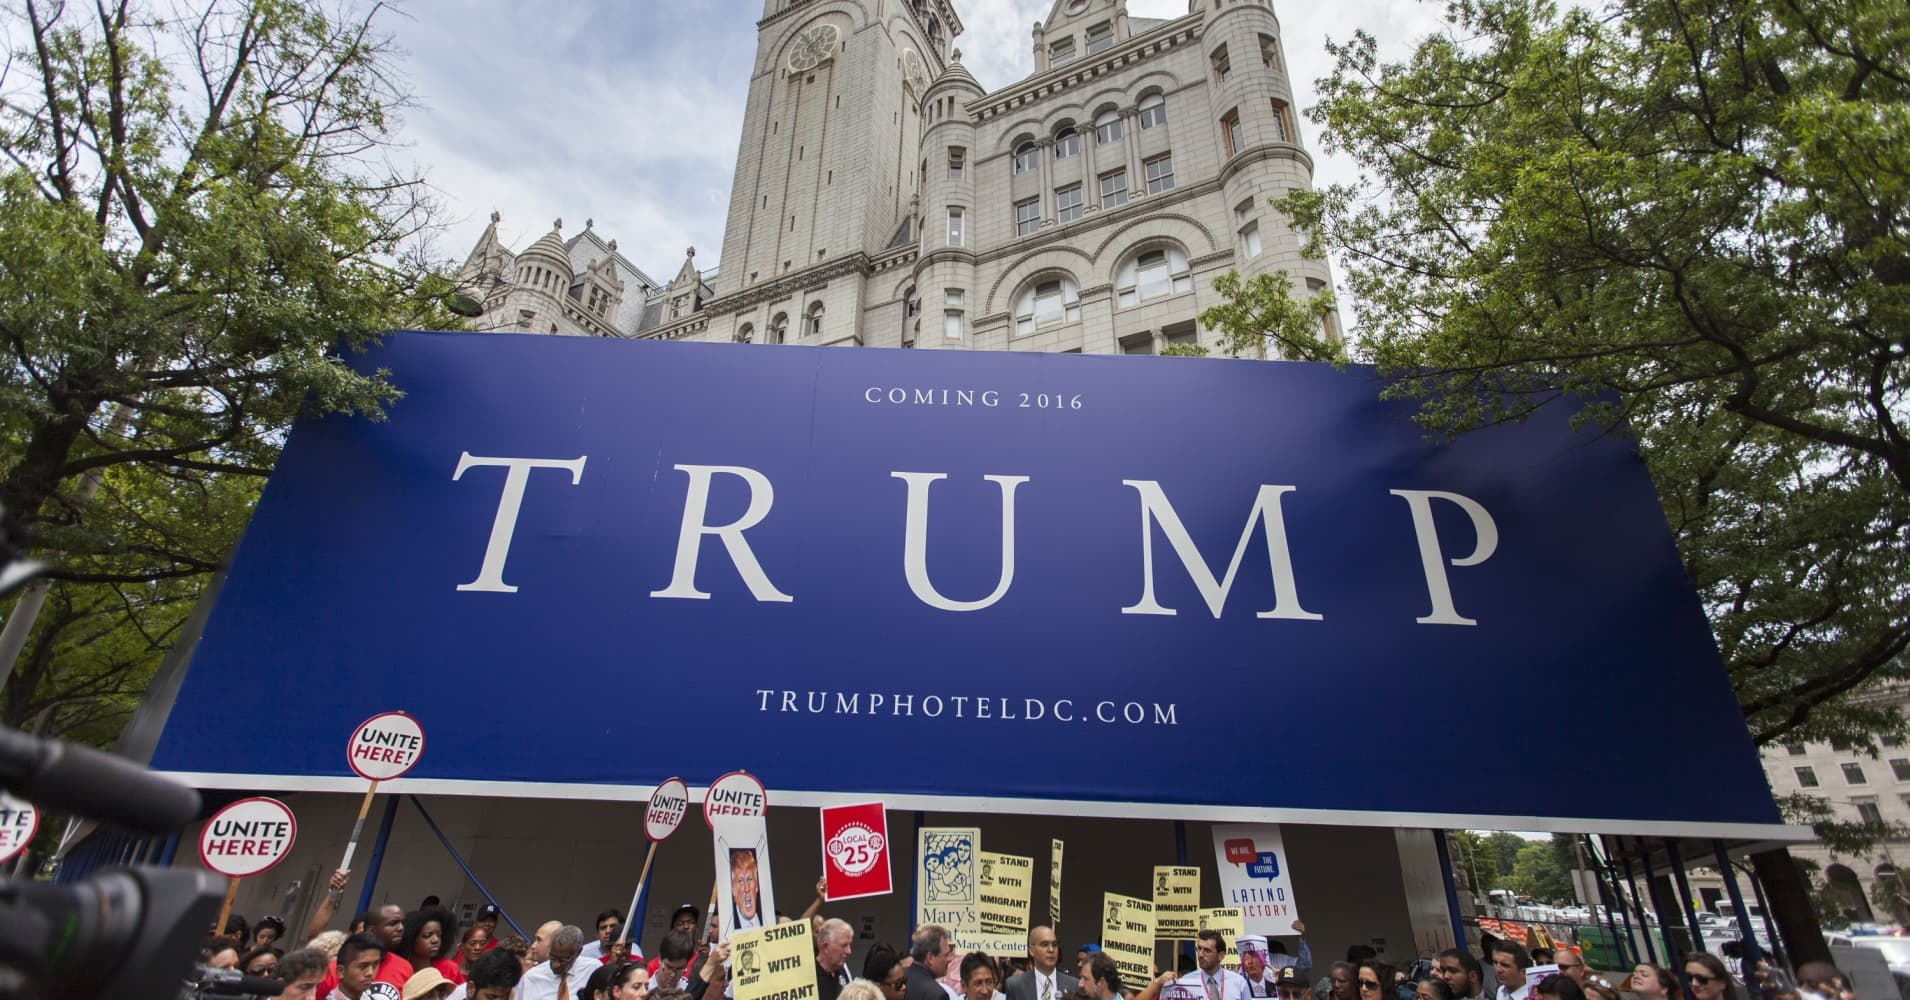 To move into the White House, Trump may have to dump DC hotel